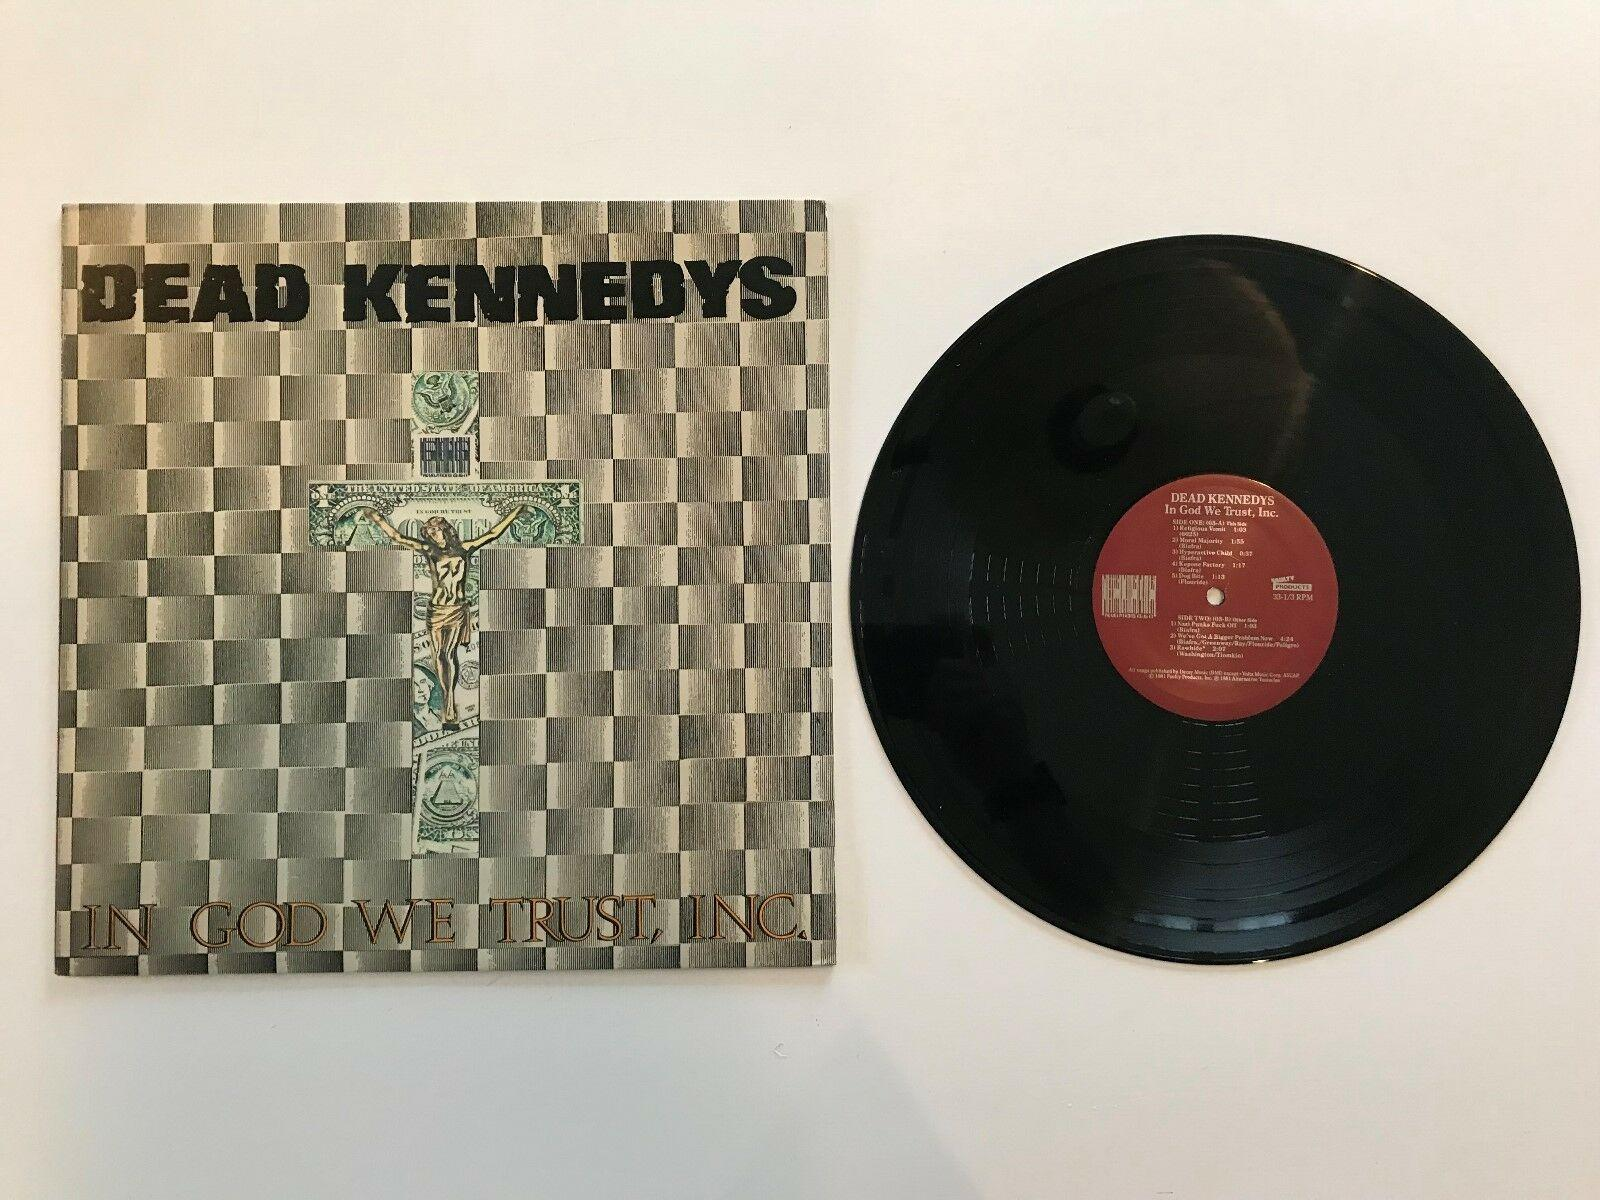 "Dead Kennedys In God We Trust, Inc. 12"" Red Labels EX/EX Punk"